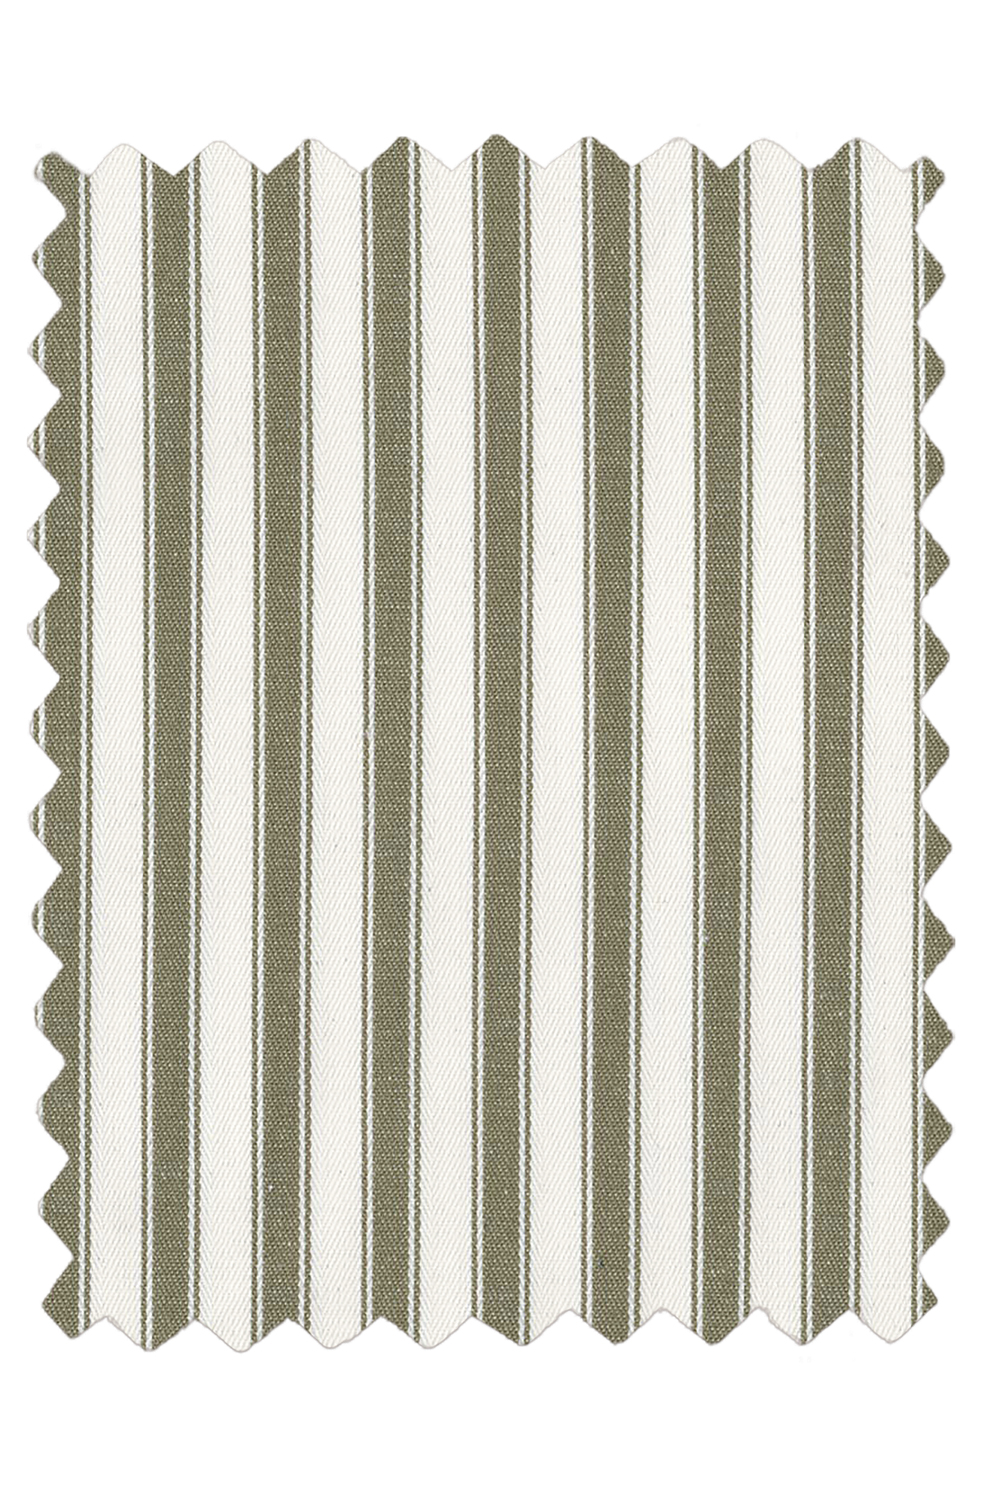 Ticking-in-Olive-zigzag